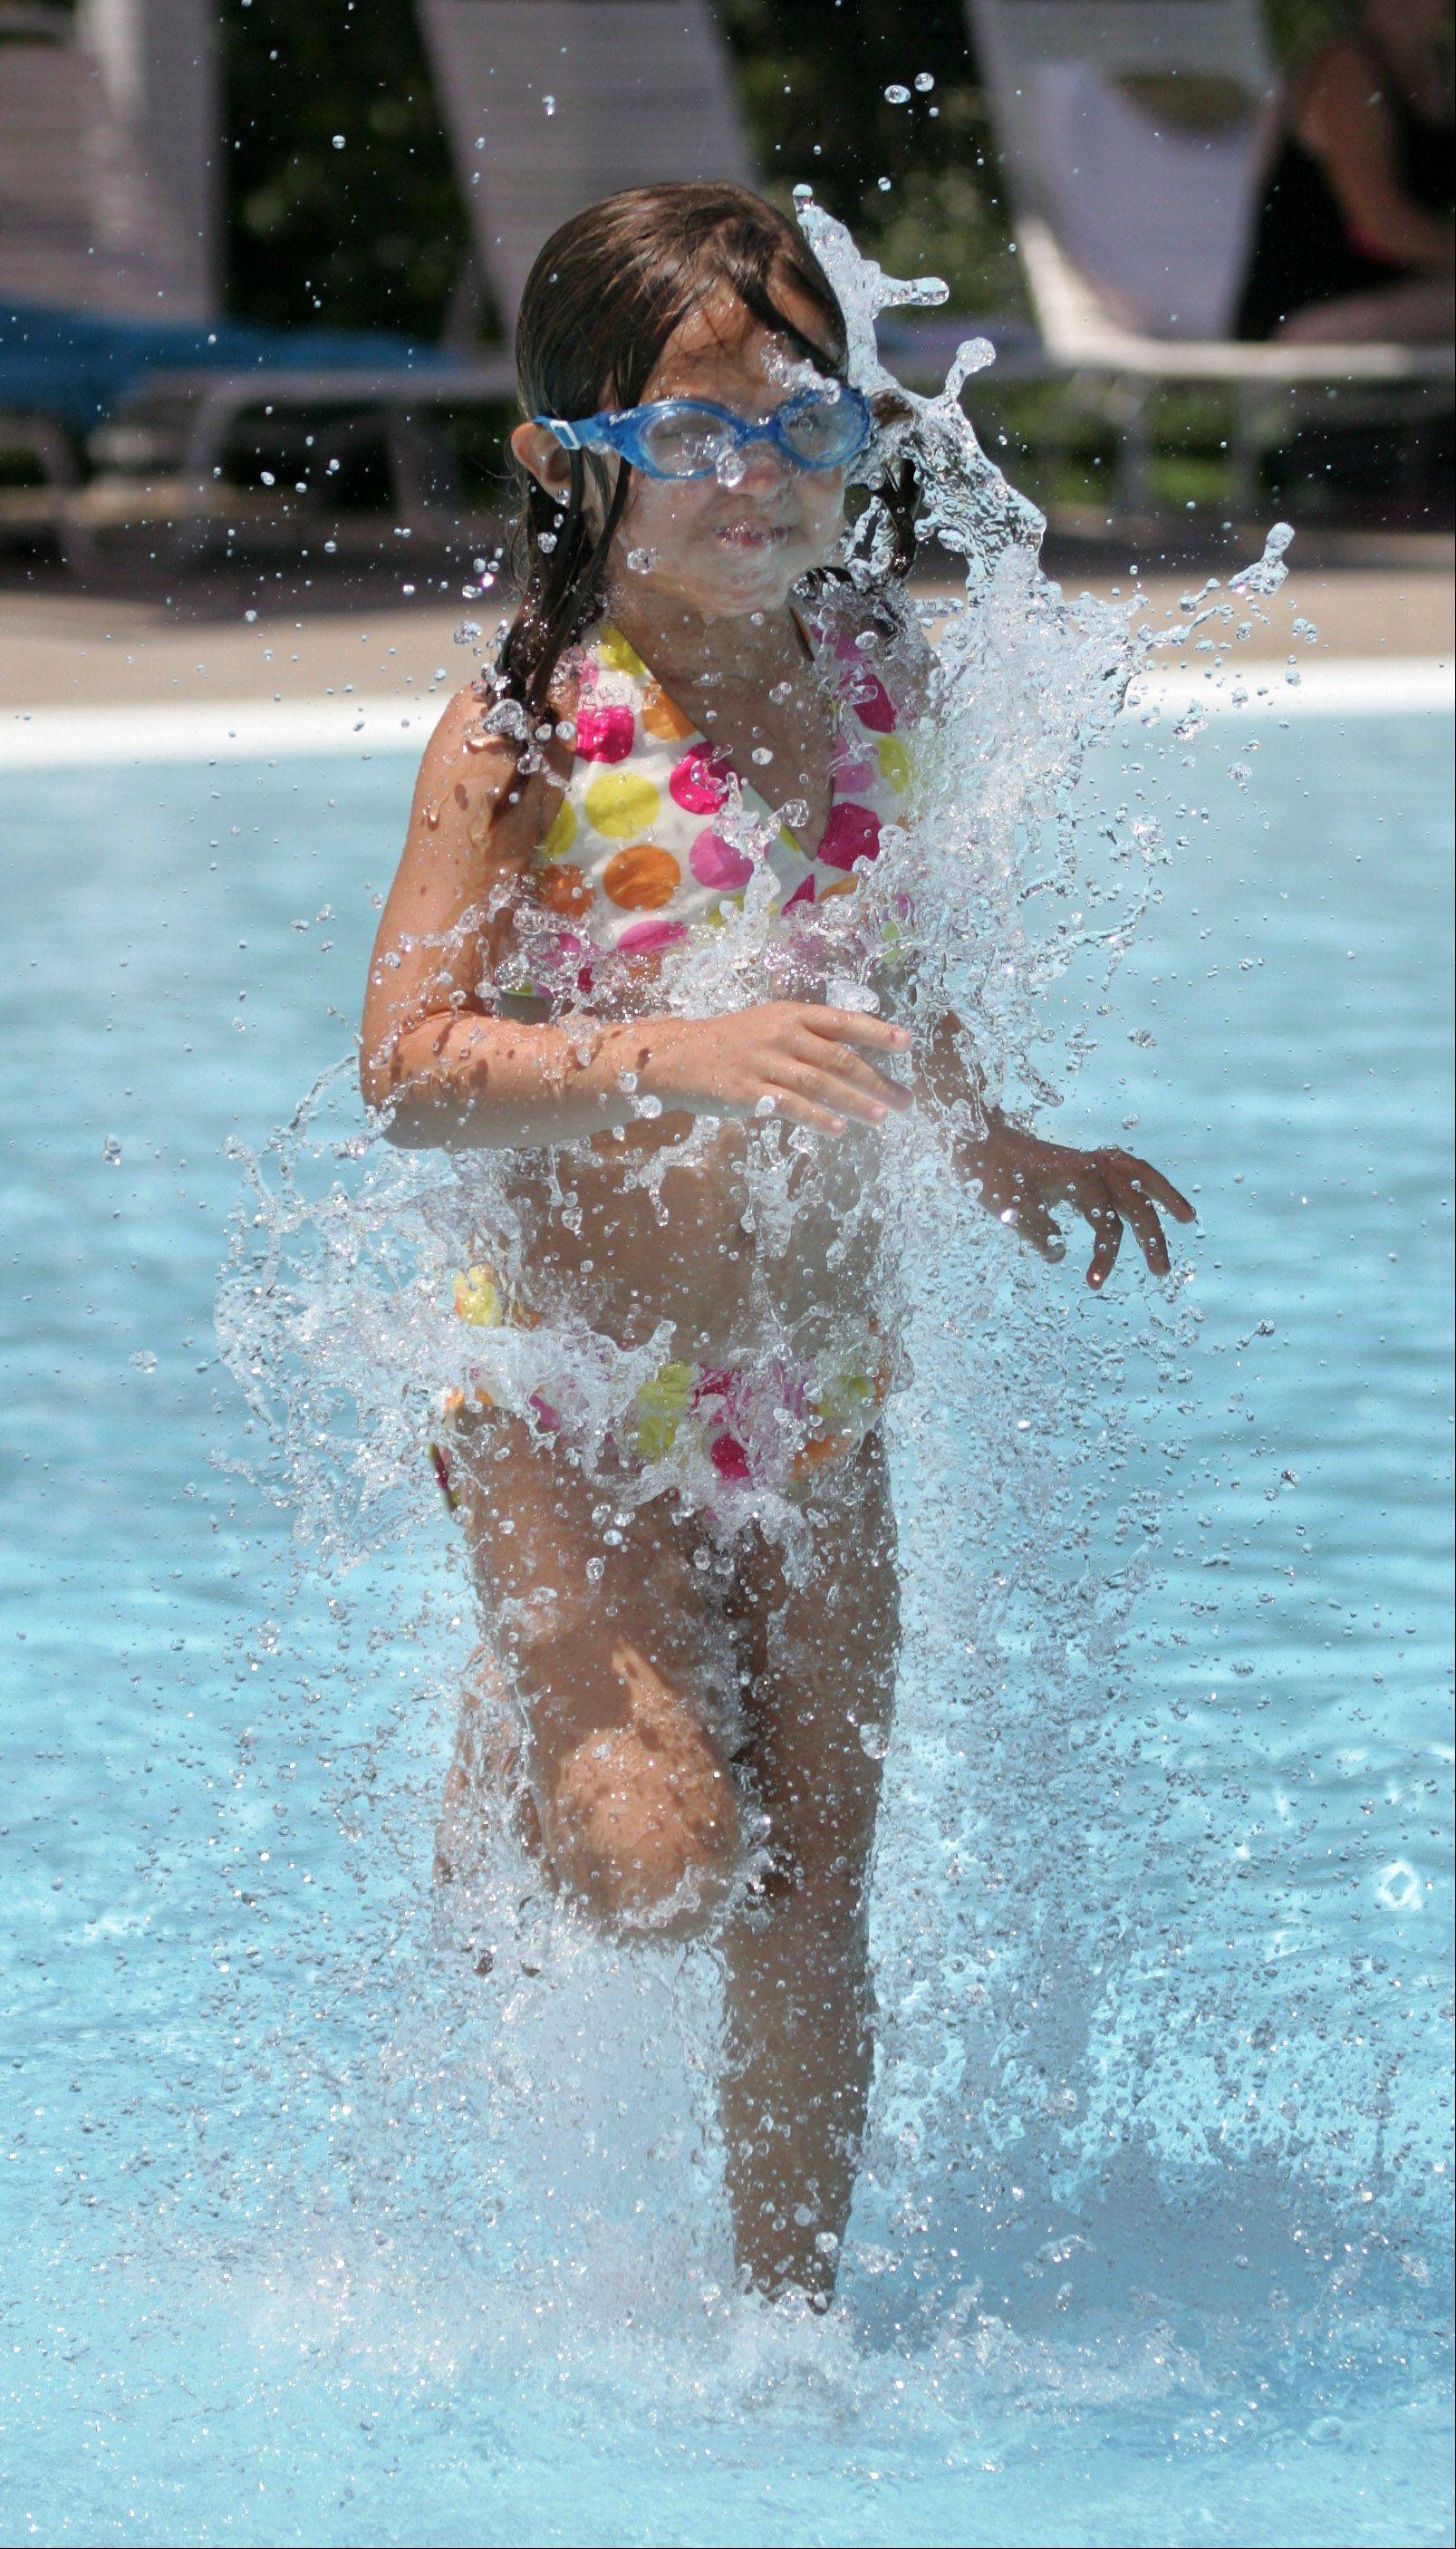 Kylie Poutre, 6, of Mundelein, stands a fountain of water at the Barefoot Bay Family Aquatic Center Wednesday in Mundelein. Residents tried to keep cool as temperatures reached into the 90s.